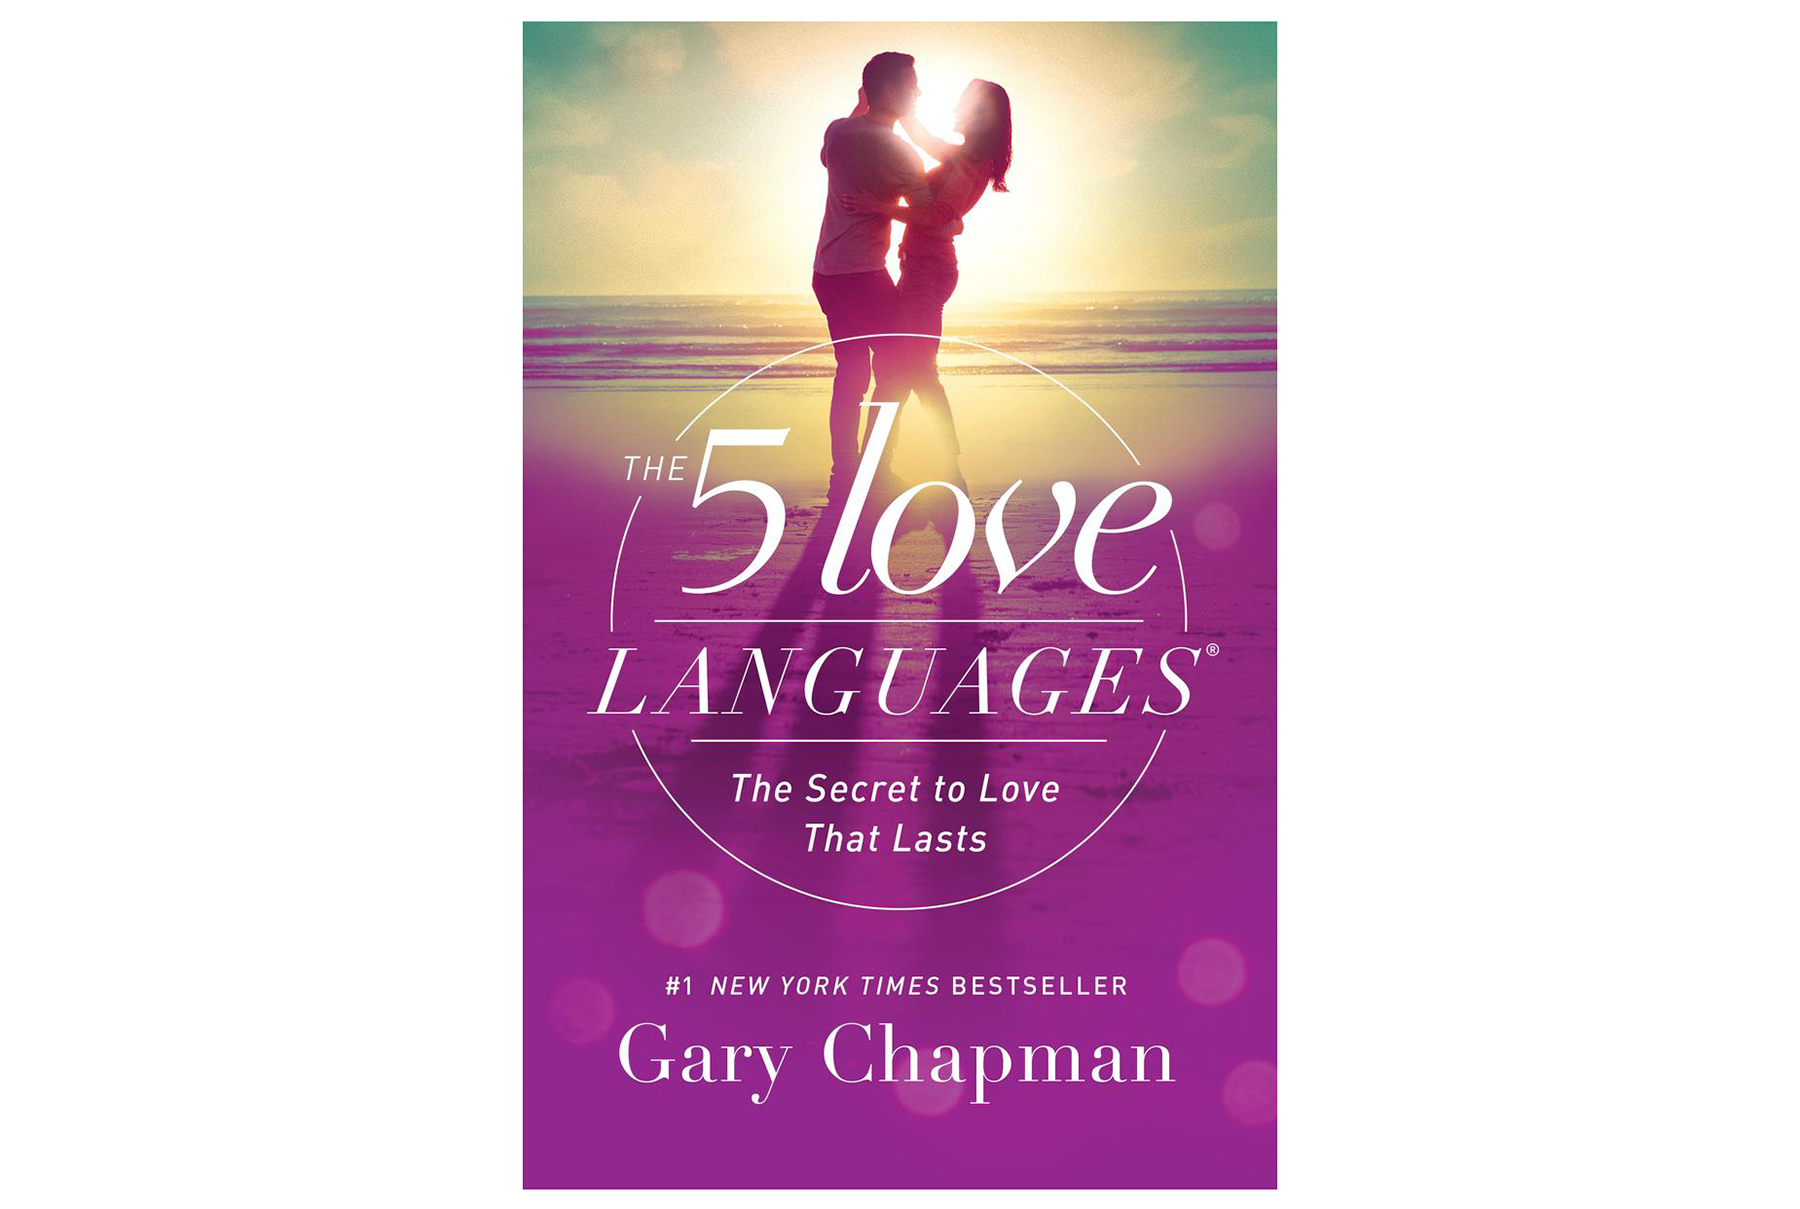 The 5 Love Languages: The Secret to Love That Lasts, by Gary Chapman